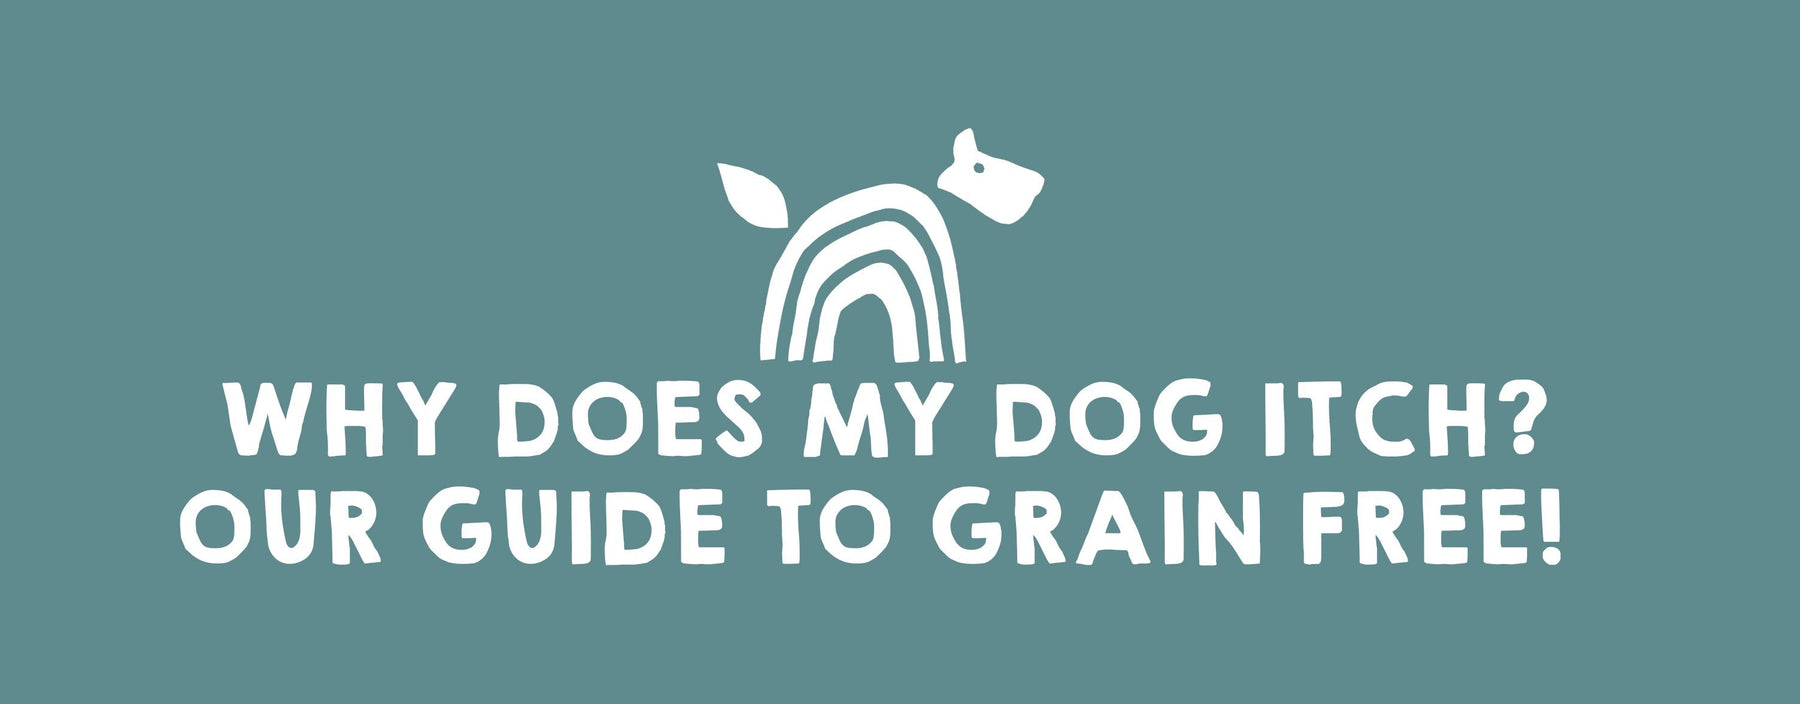 Why Does My Dog Itch? Our guide to Grain Free!